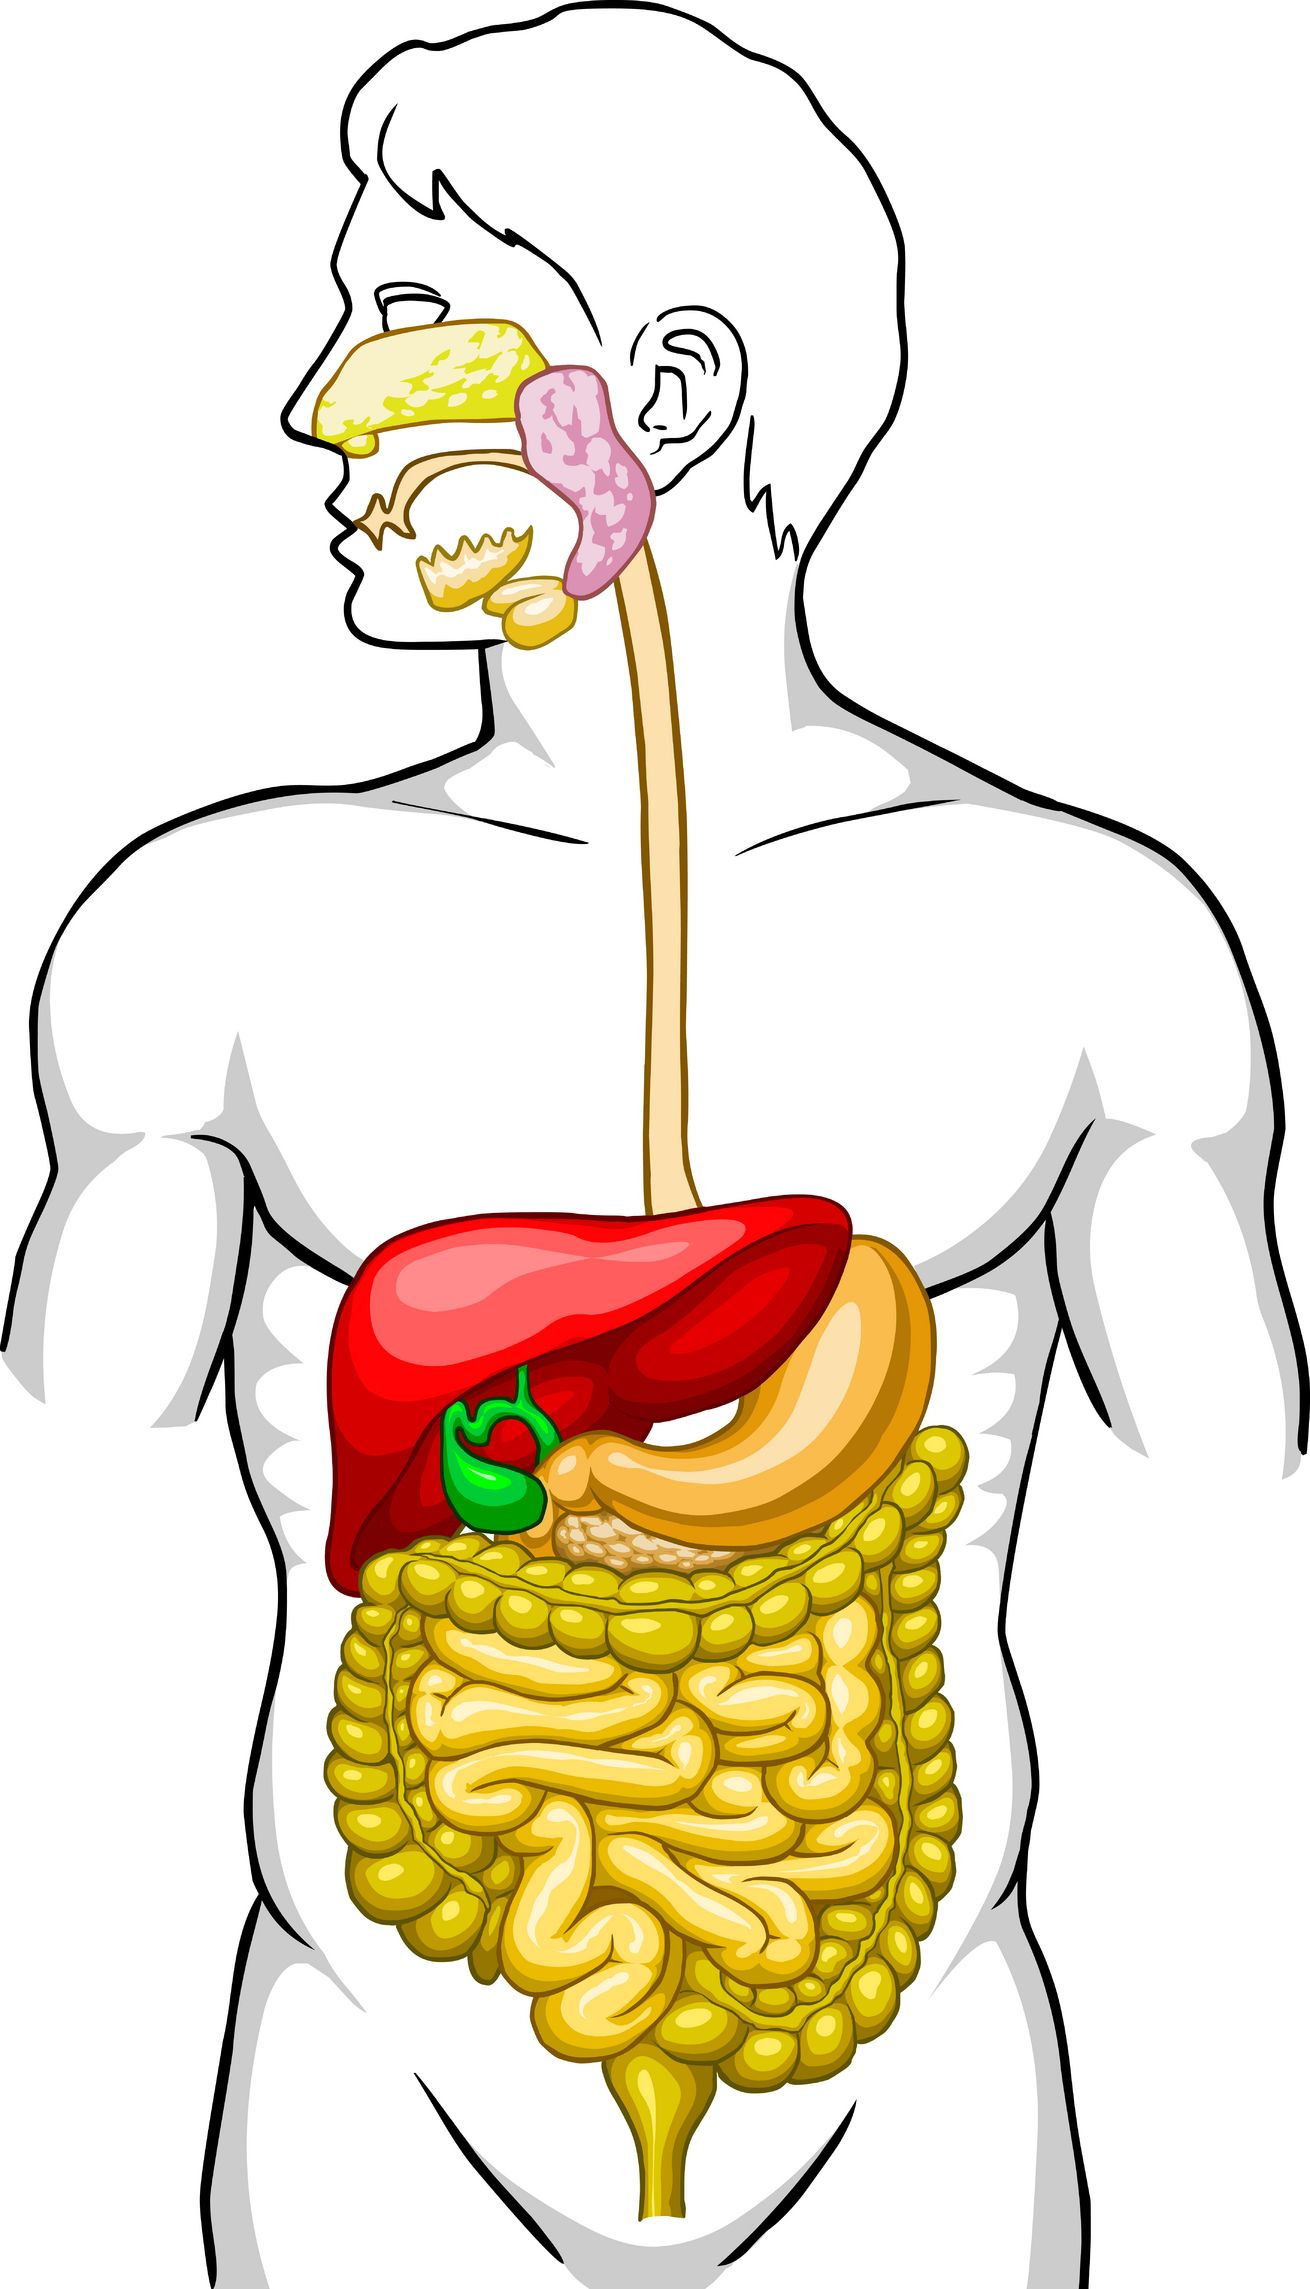 Cartoon pic of esophagus major components of the school cartoon pic of esophagus major components of the ccuart Choice Image